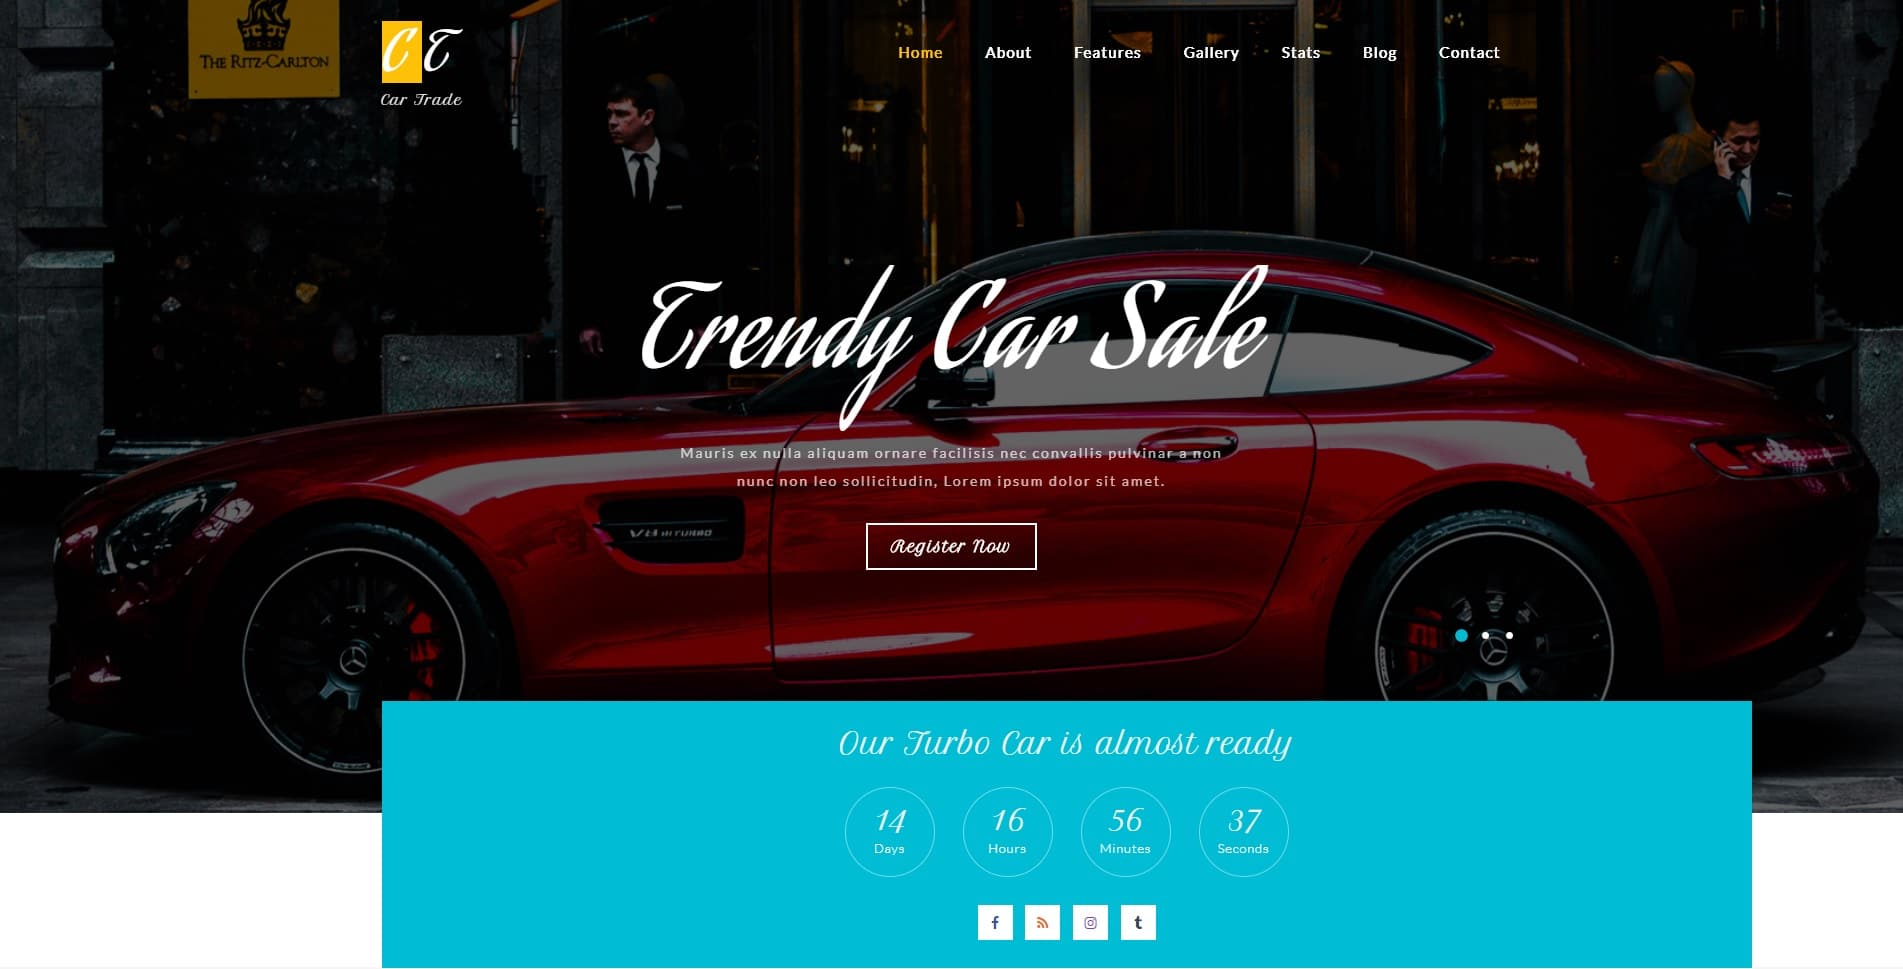 free-trasportation-website-template-car-trade